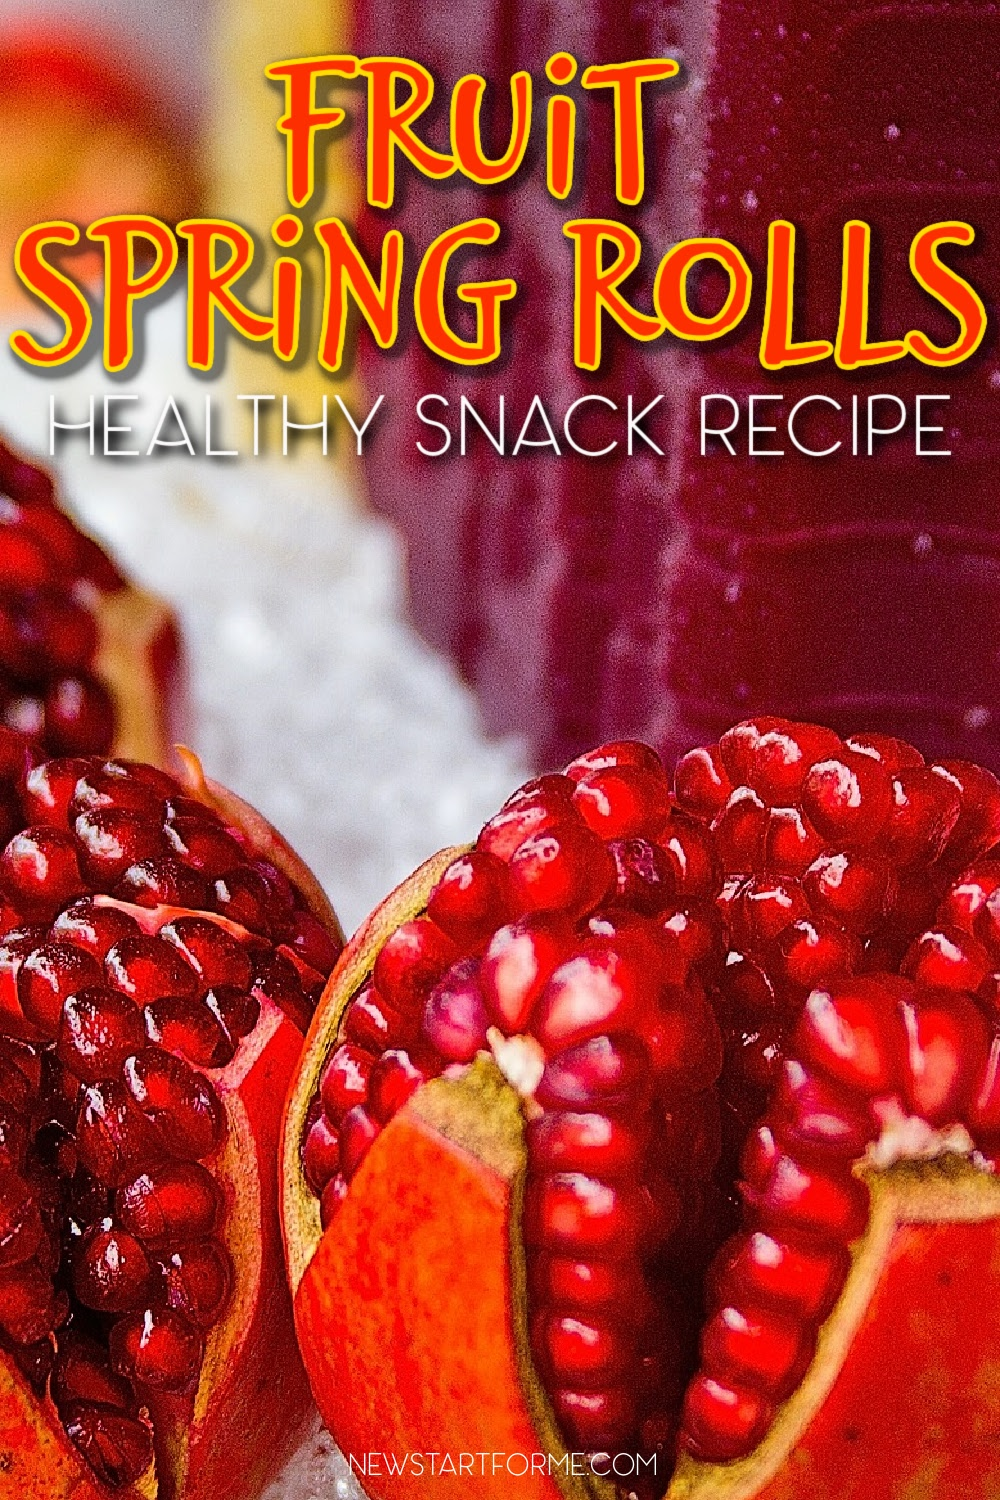 Fruit Spring Rolls are a beautiful and easy way to hit your daily fruit goal! Check out this quick video and grab the recipe here.